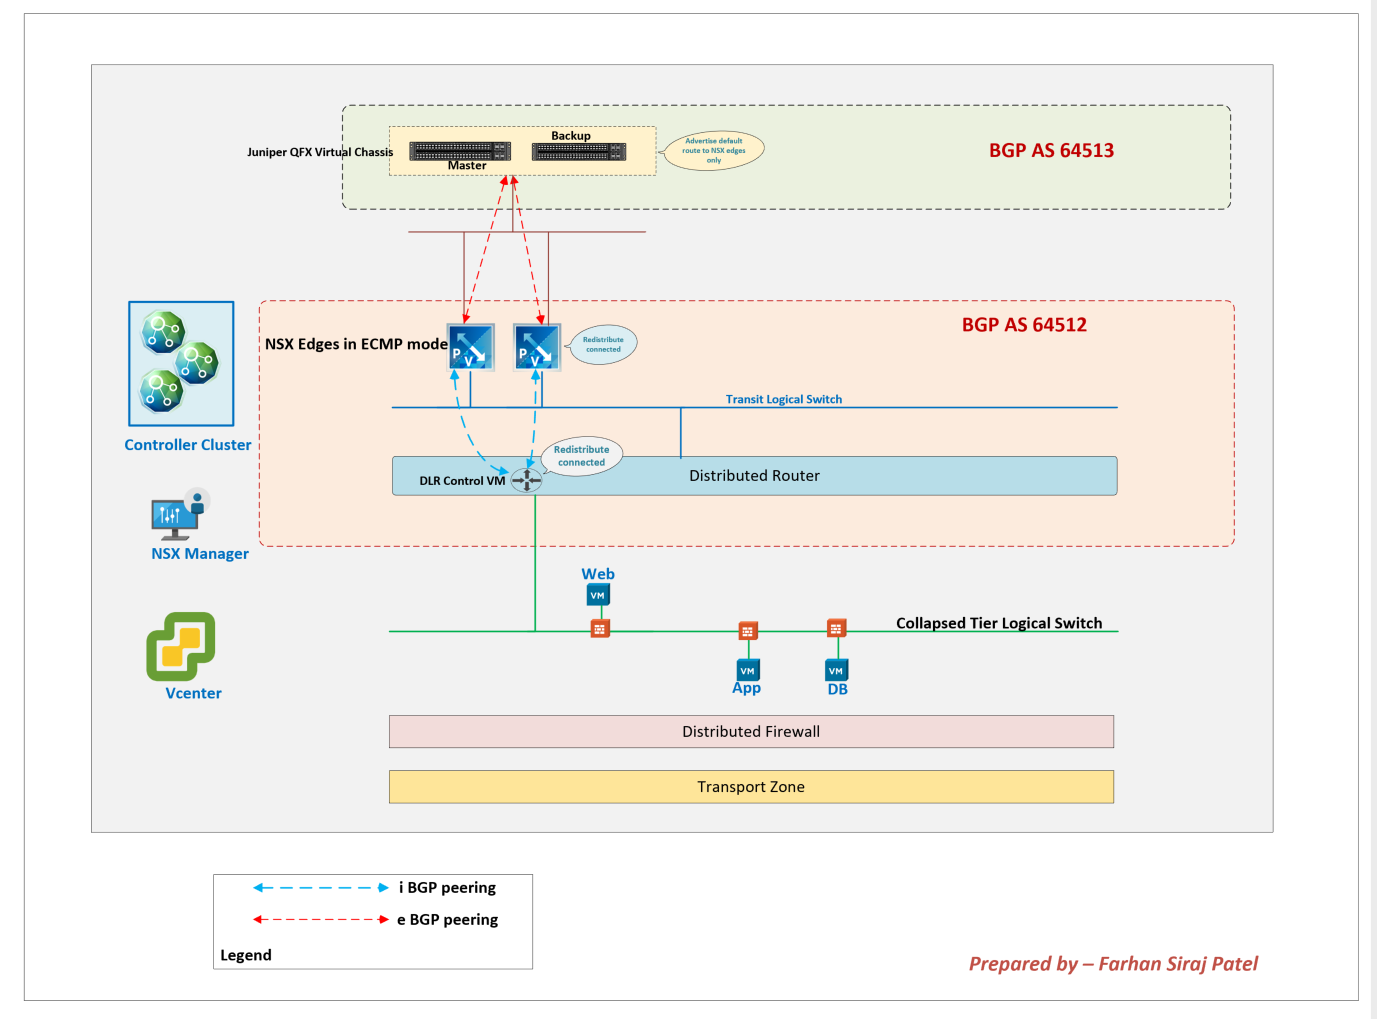 Troubleshooting Distributed Firewall in NSX-V – How to check